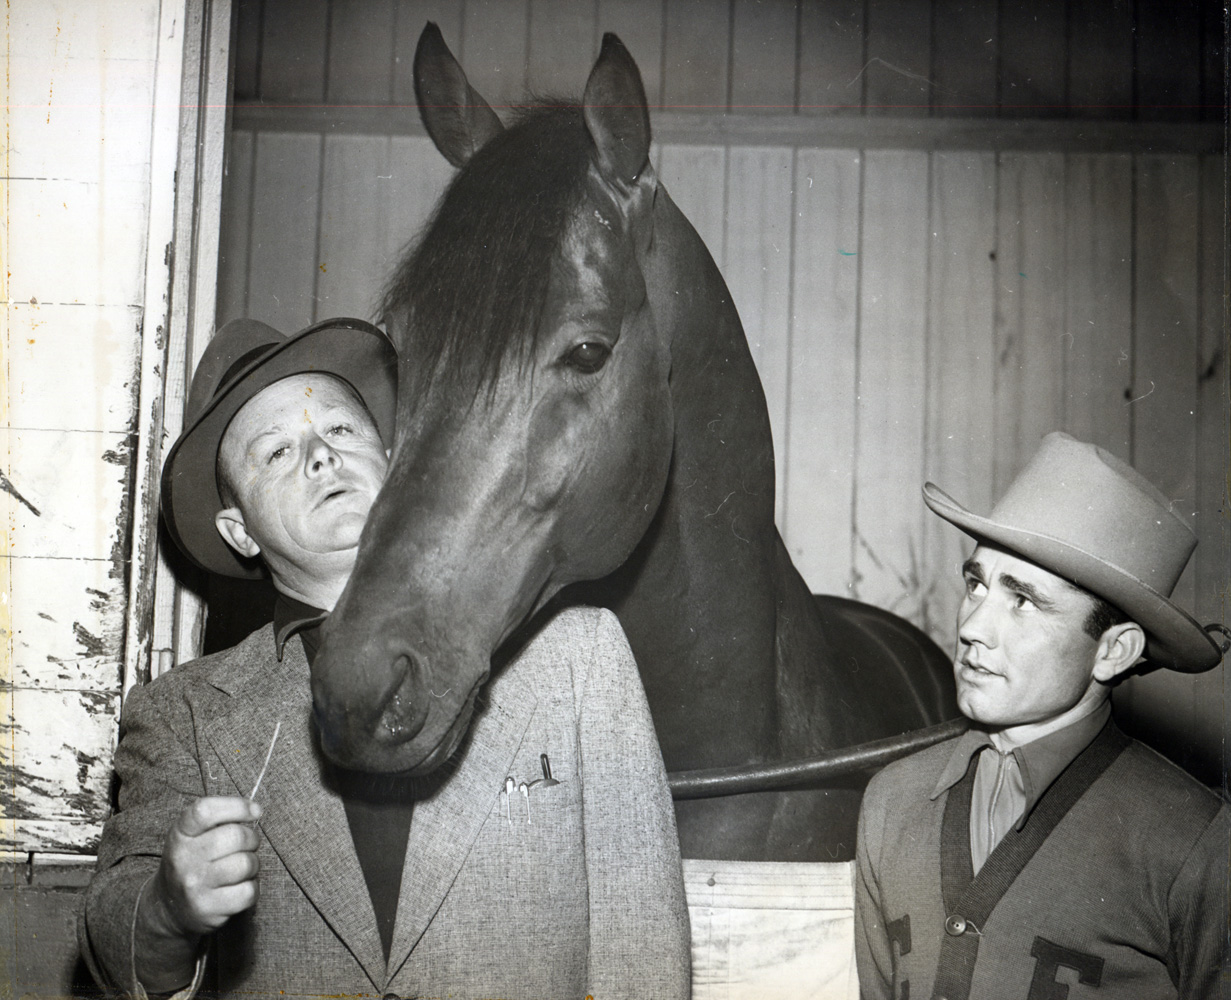 Jimmy Jones, Citation and jockey Steve Brooks in the barn area at Hollywood Park in 1951 (Hollywood Park Photo/Museum Collection)